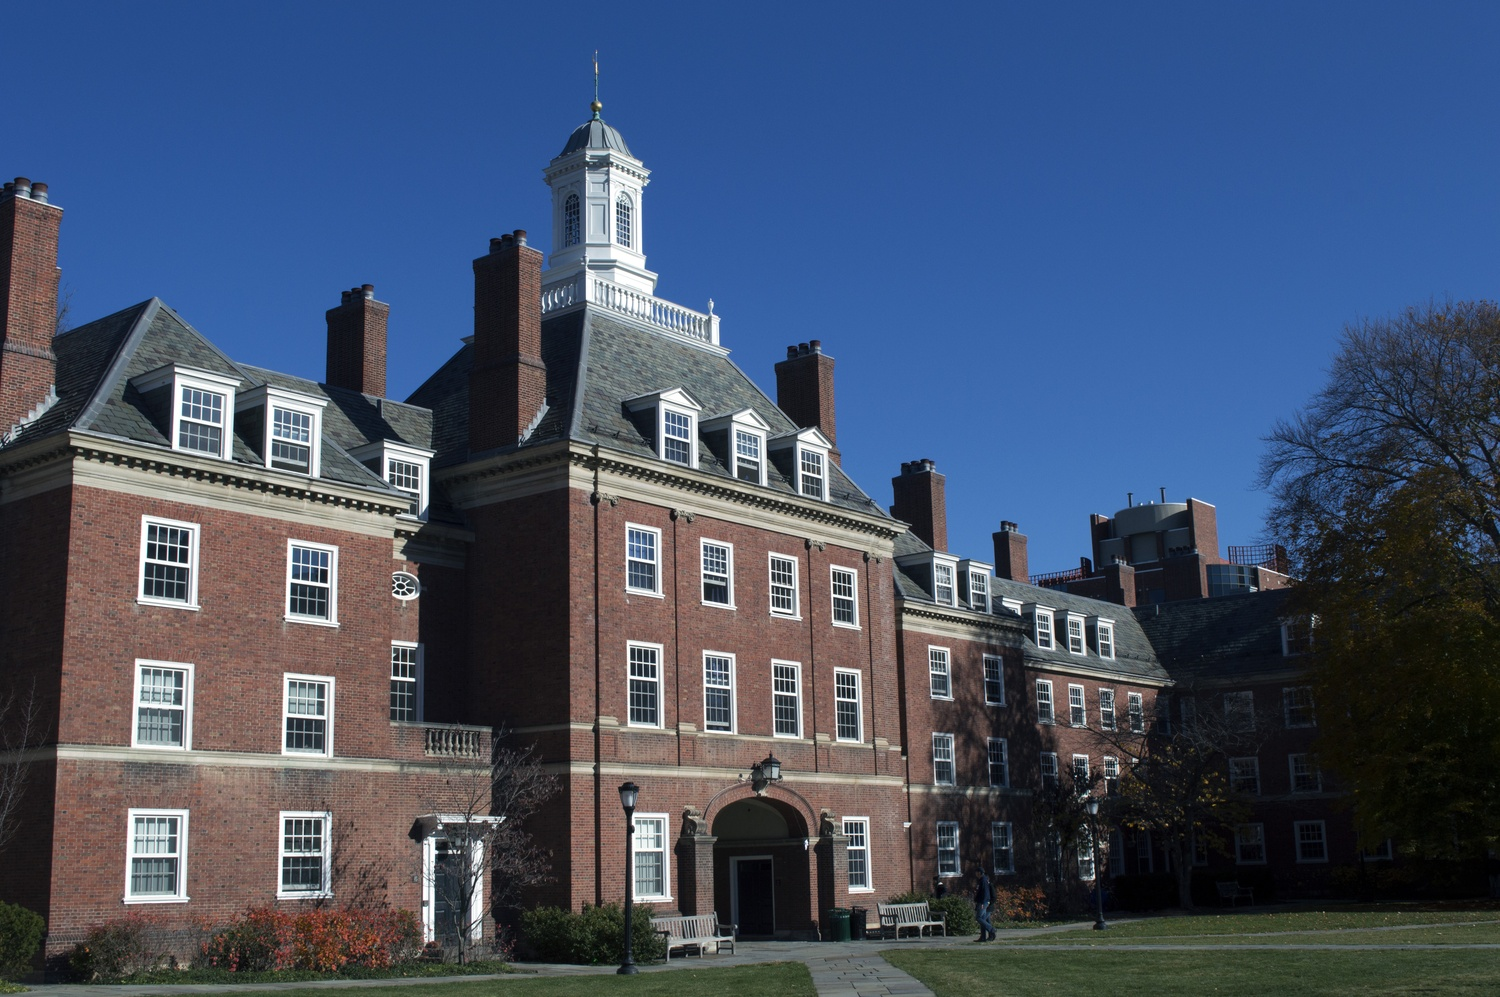 Silliman College is one of Yale's undergraduate residential colleges.